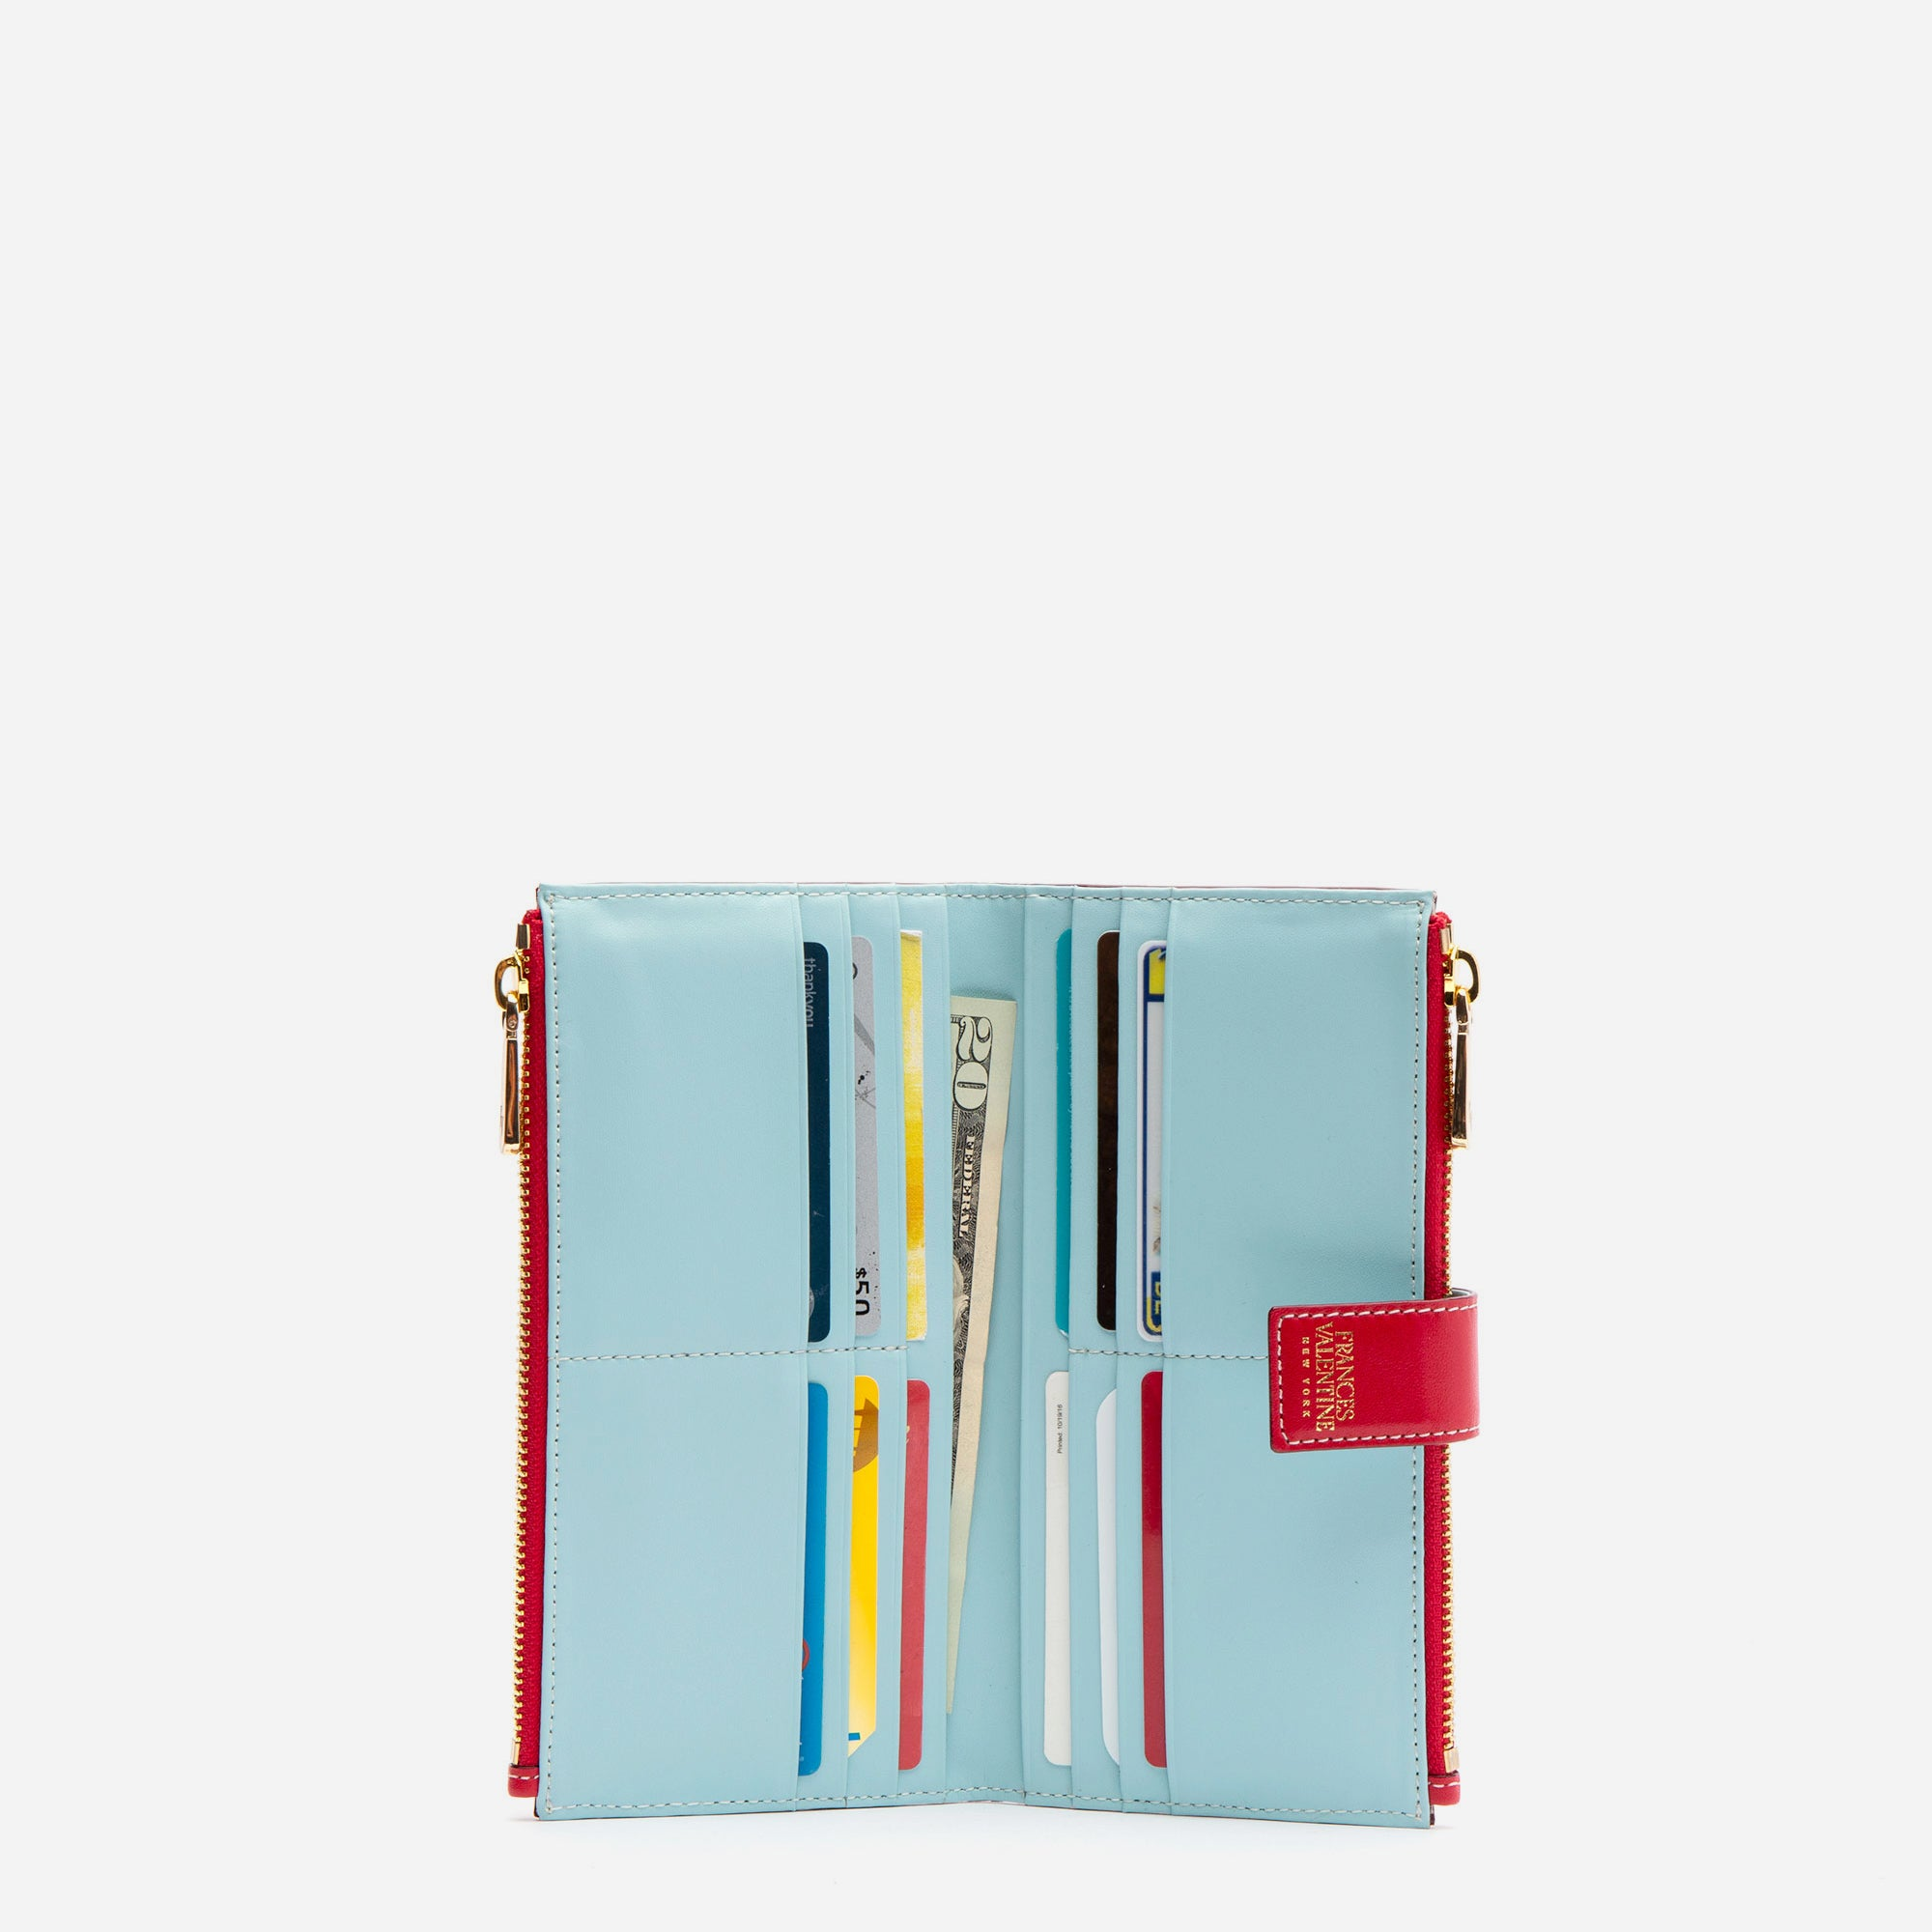 Sacagawea Snap Wallet Red Light Blue